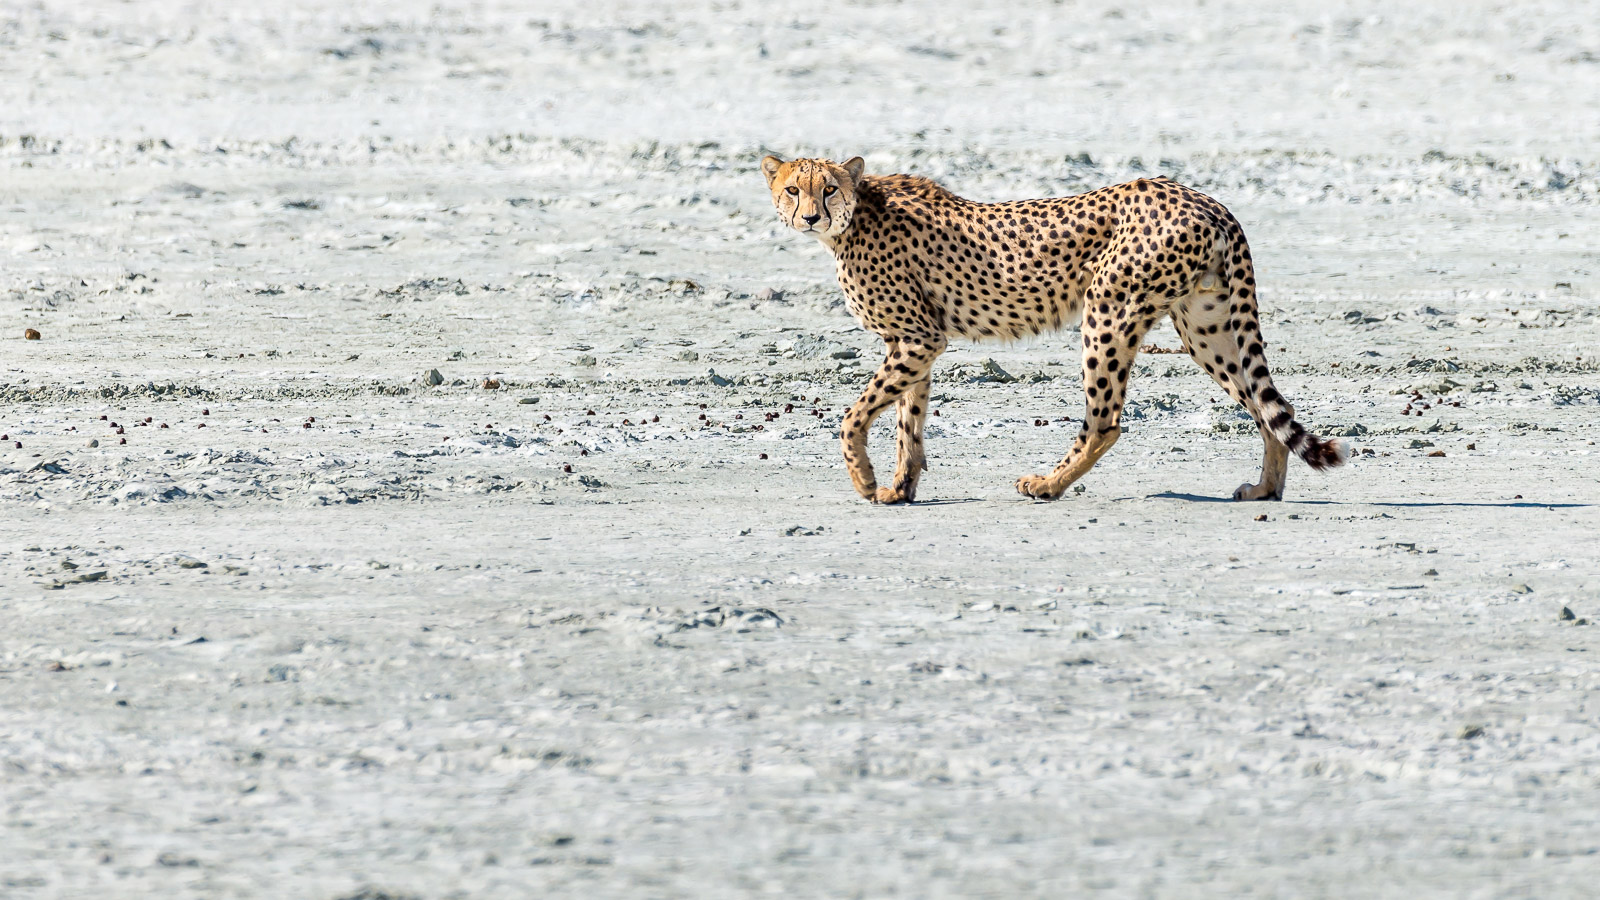 Cheetah walking in Etosha National Park